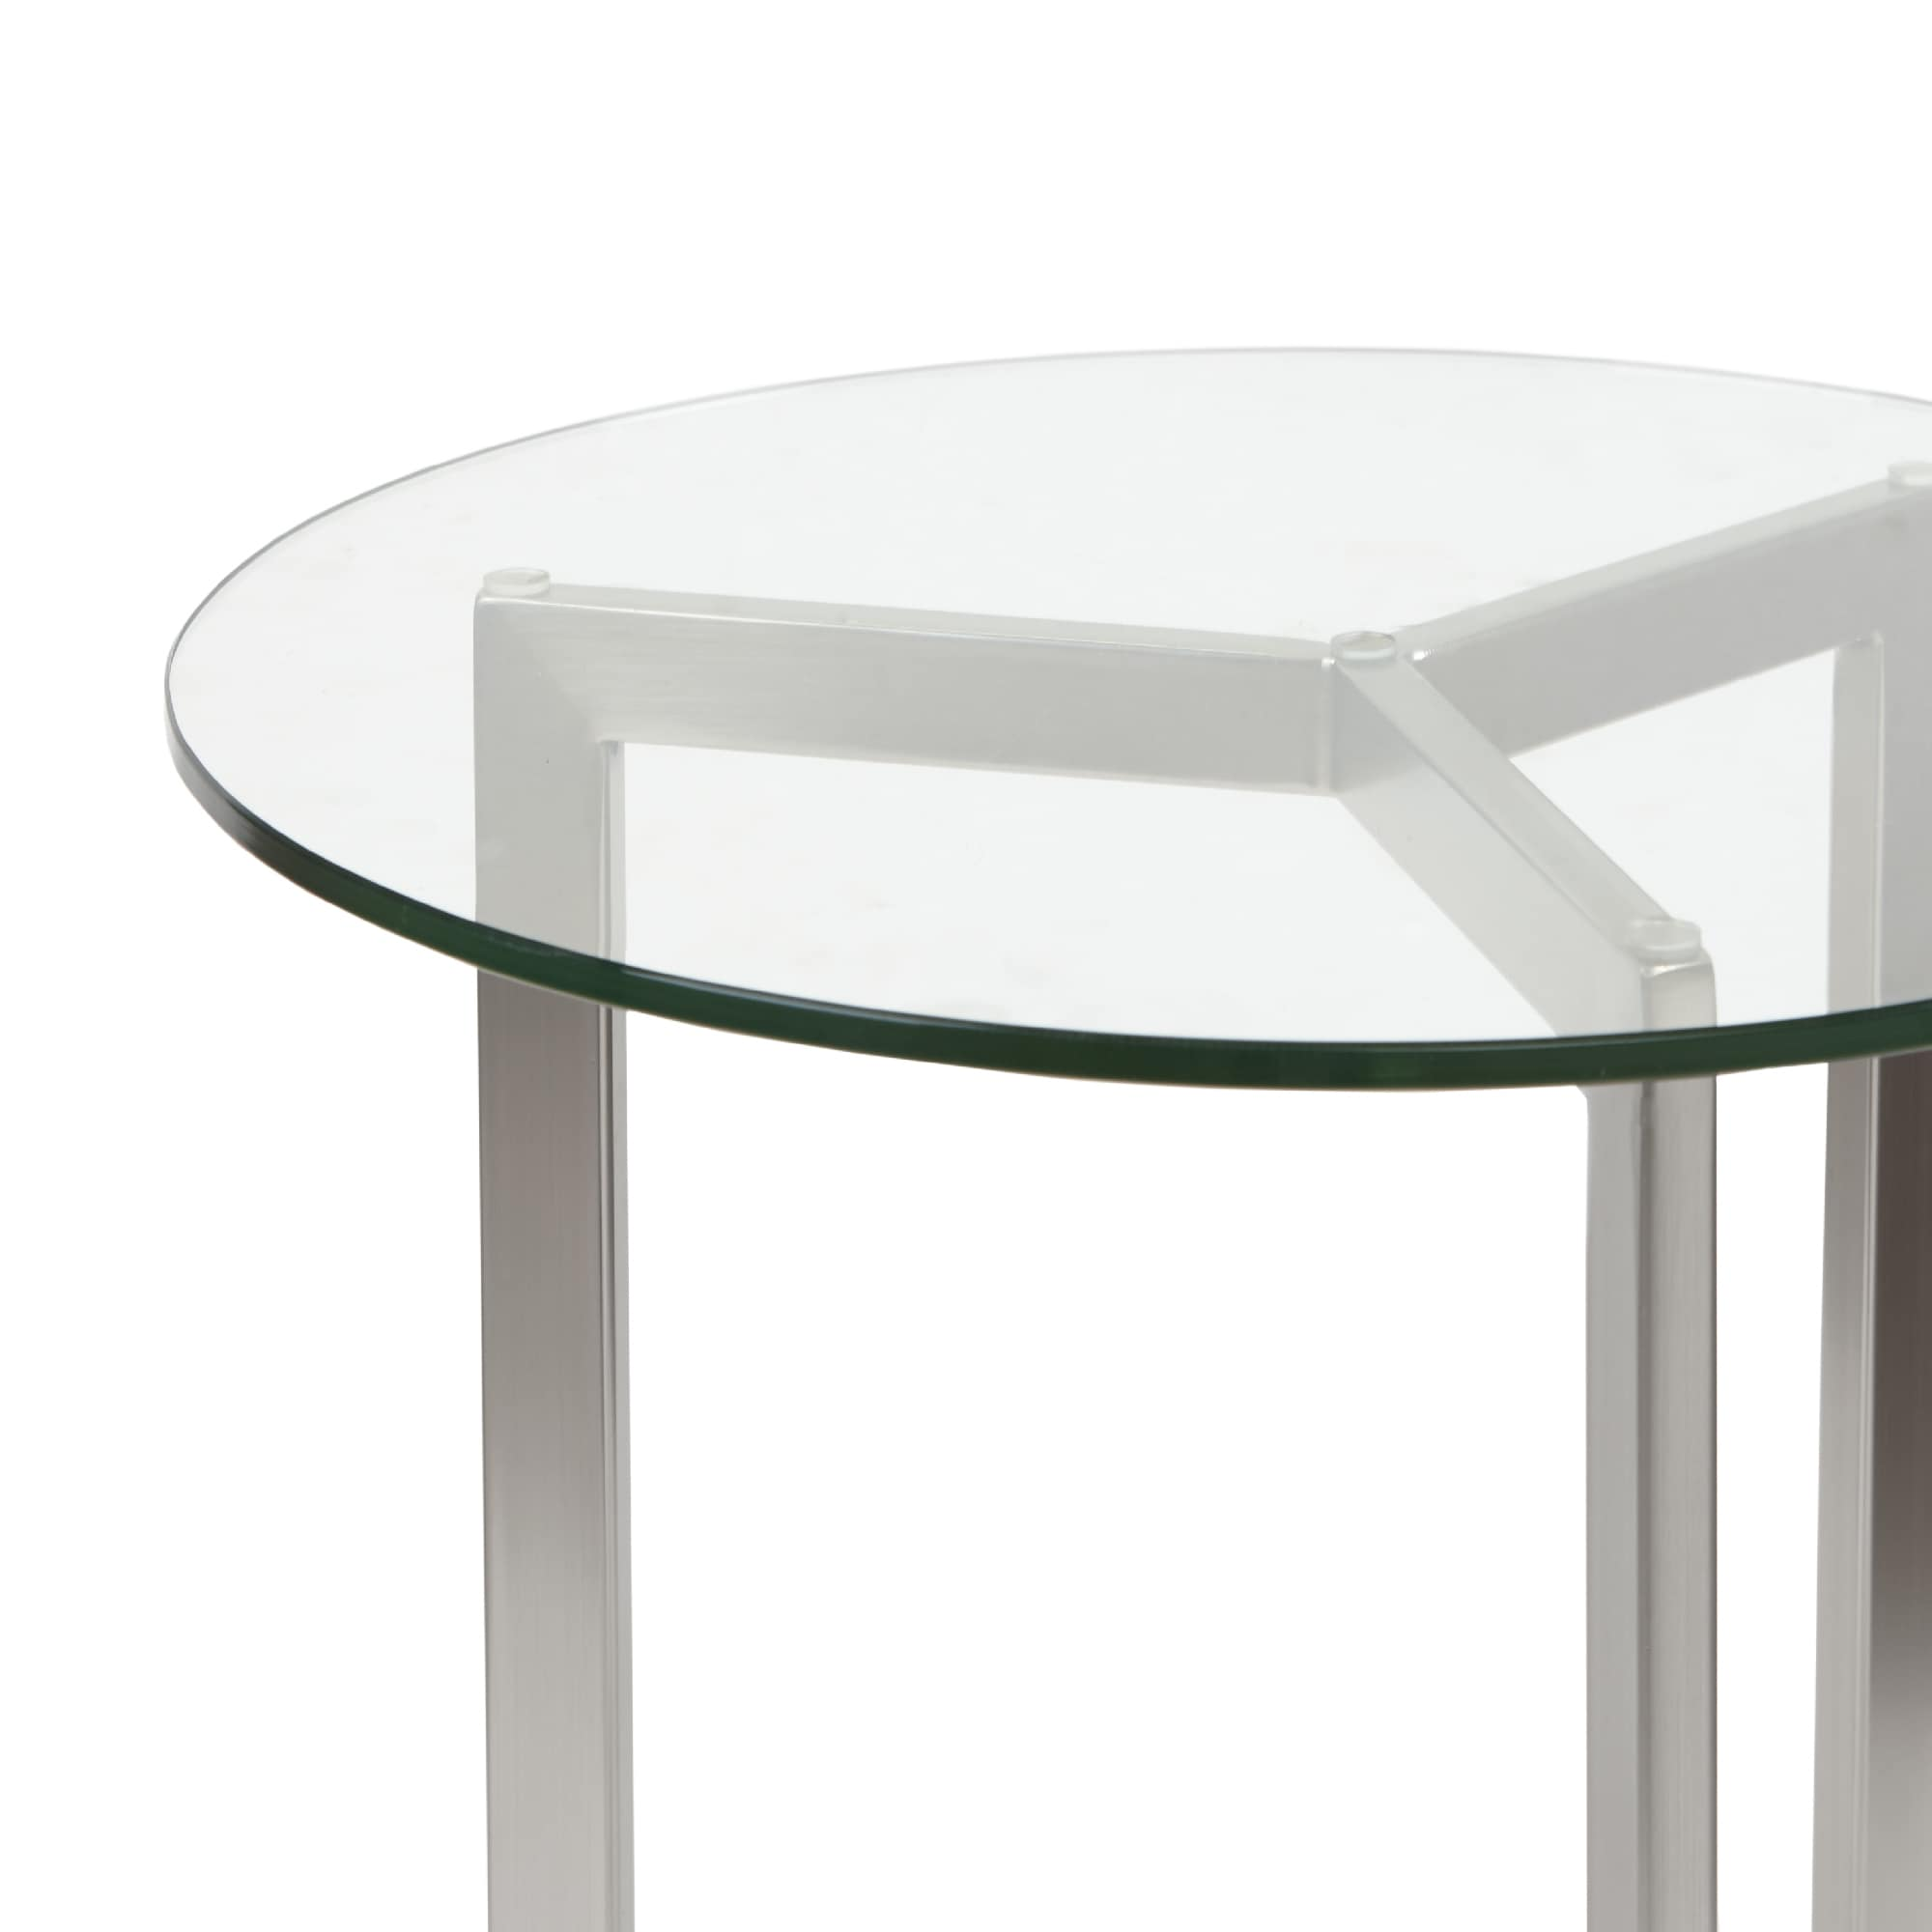 Alki Chaises Madison Park Alki Silver Round End Table